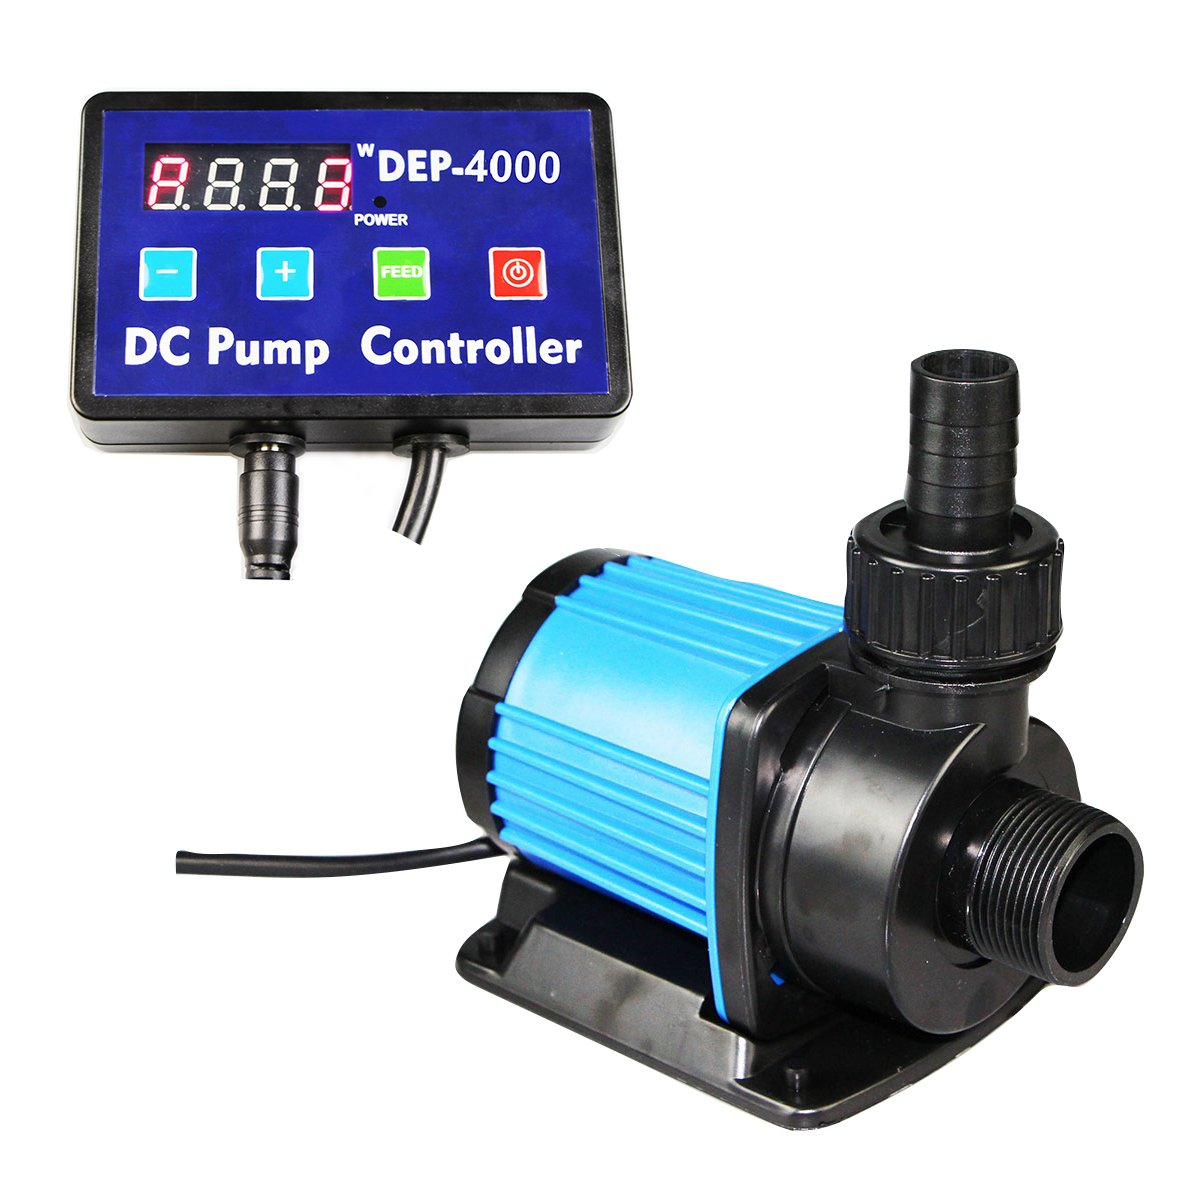 Uniclife DEP-4000 Controllable DC Water Pump 1052 GPH with Controller for Marine Freshwater Aquarium Pond Circulation by Uniclife